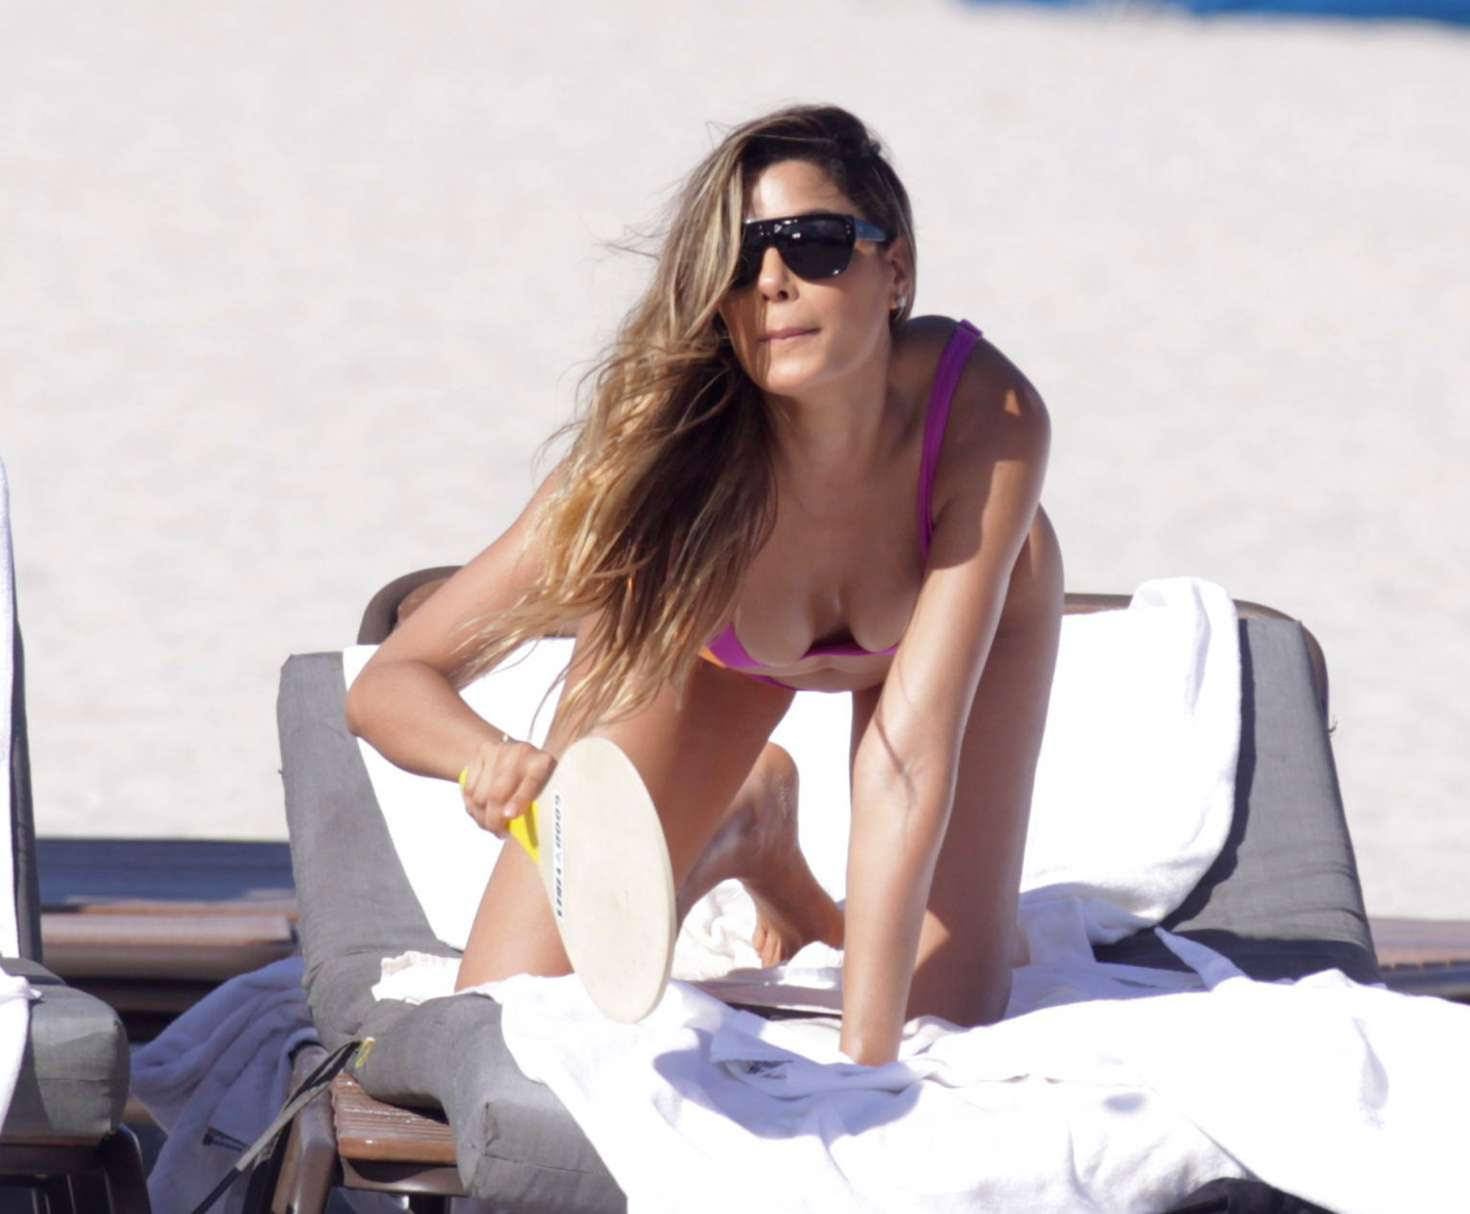 Ariadna Gutierrez in Bikini on the beach in Miami